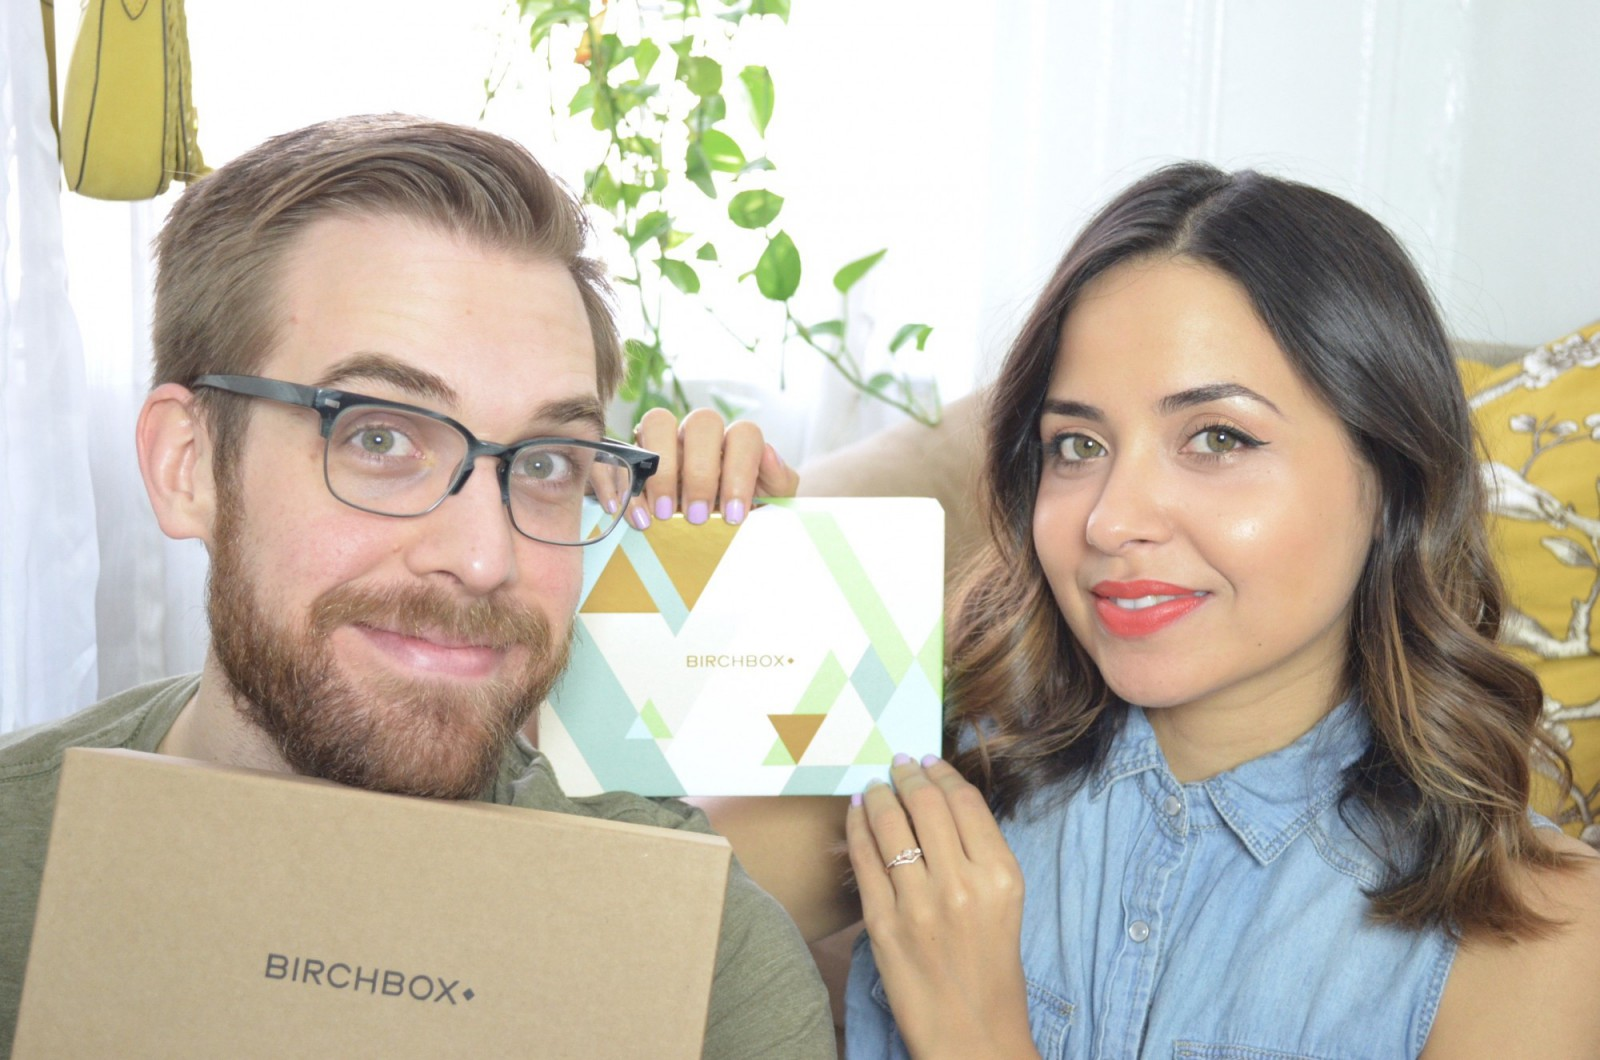 Birchbox and Birchbox Man March 2016